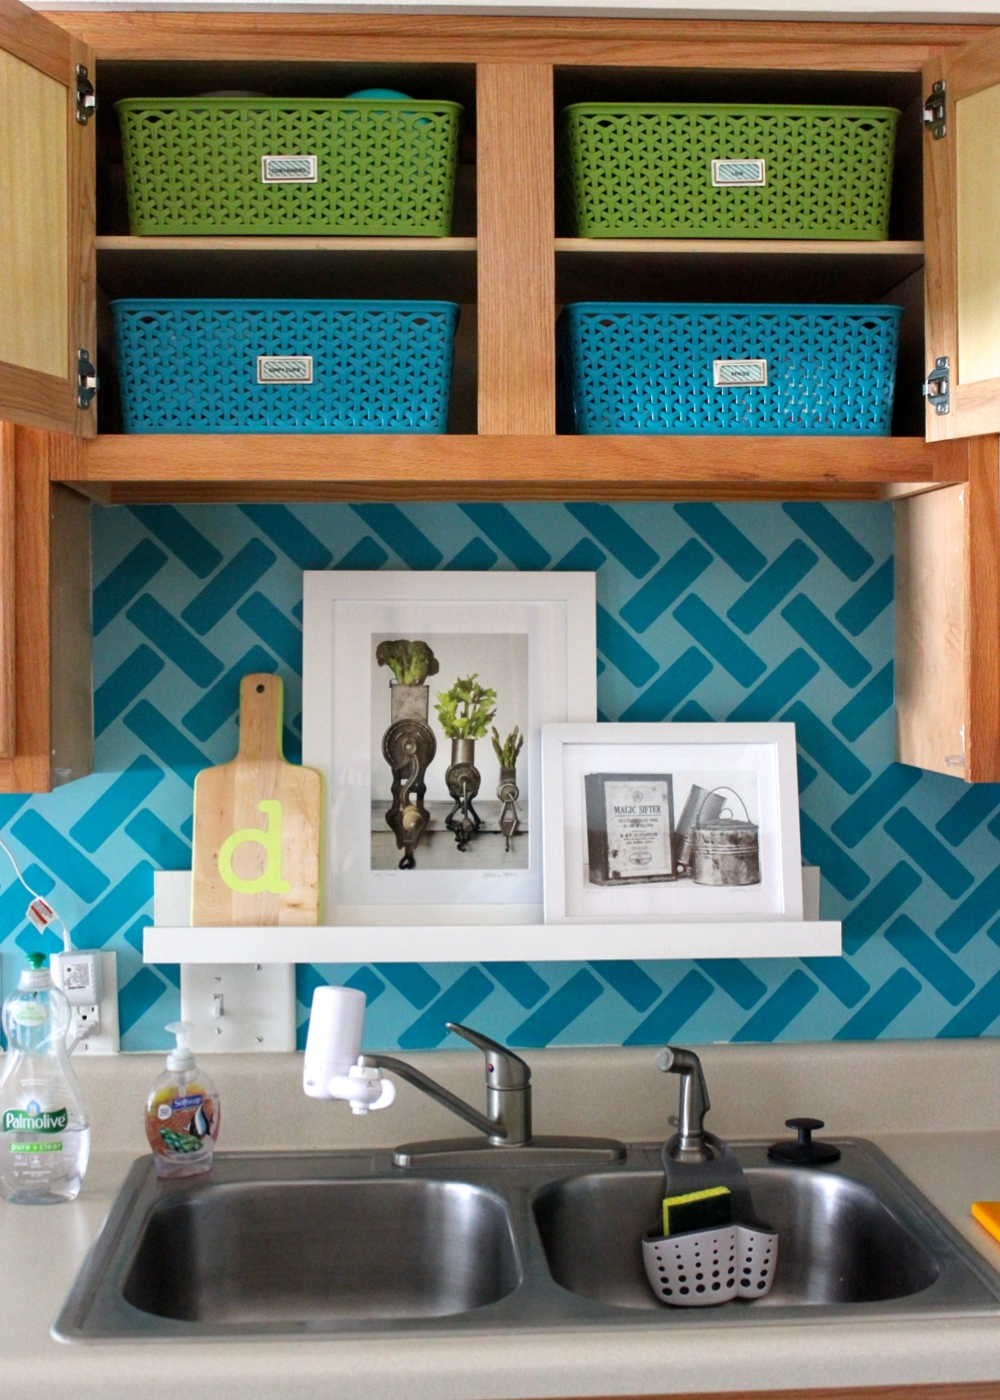 Permalink to Upper Kitchen Cabinet Organization Ideas